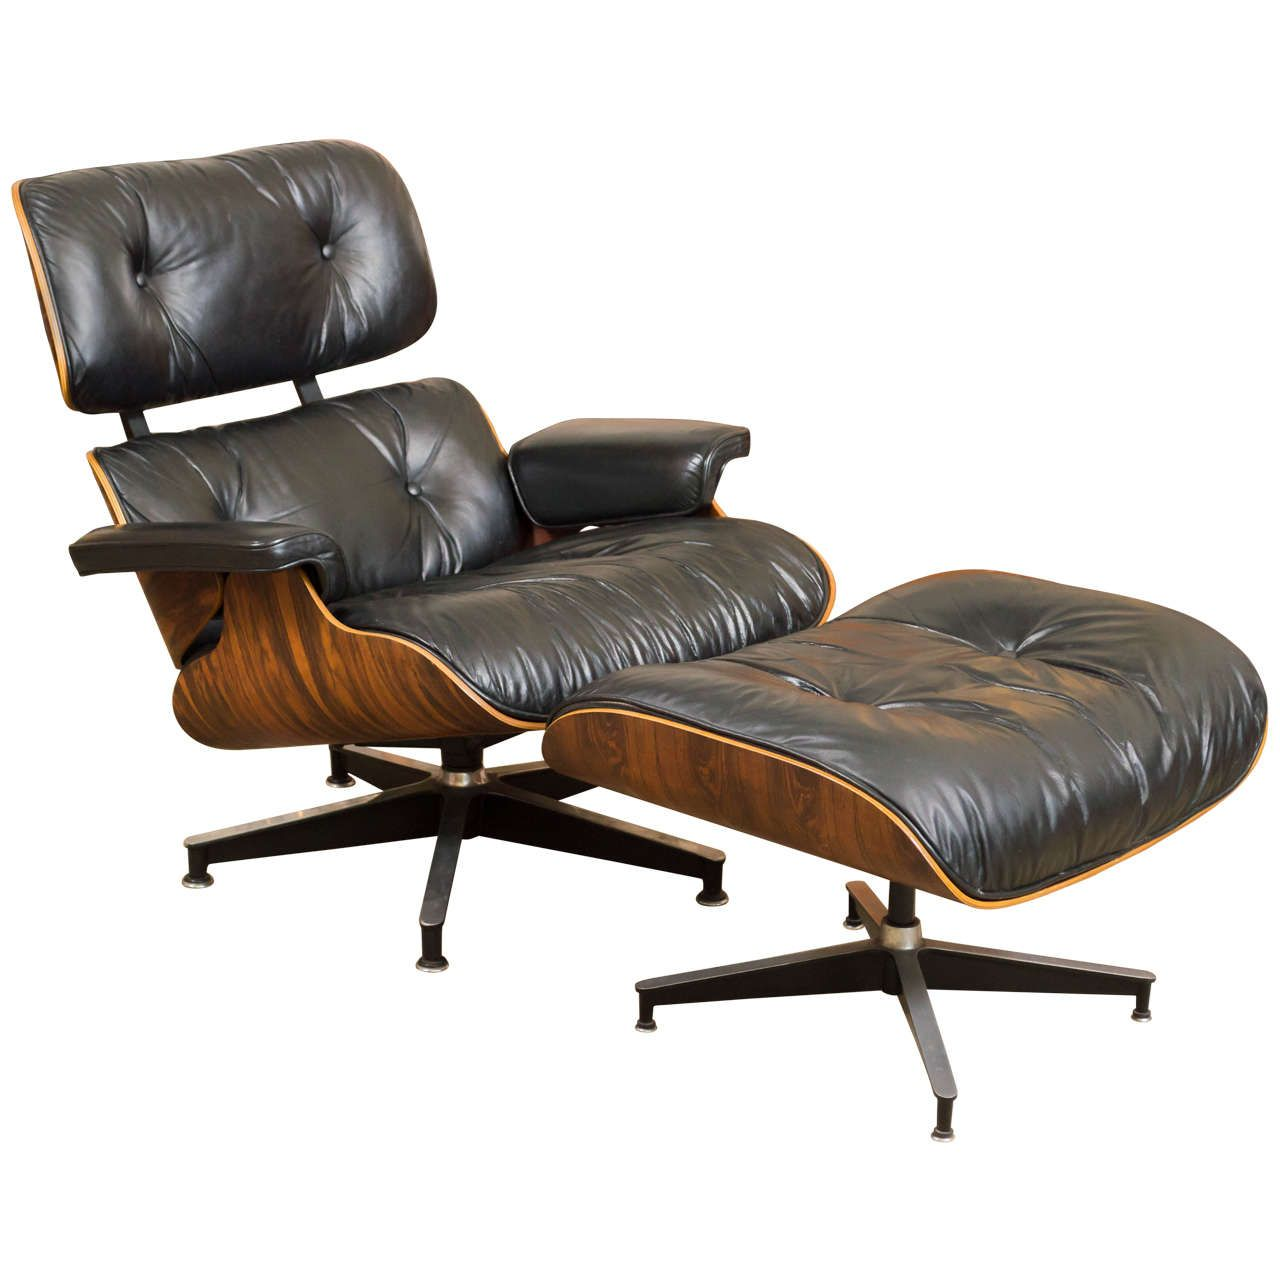 Eames Rosewood Lounge Chair 670 And Ottoman 671 For Herman Miller |  1stdibs.com